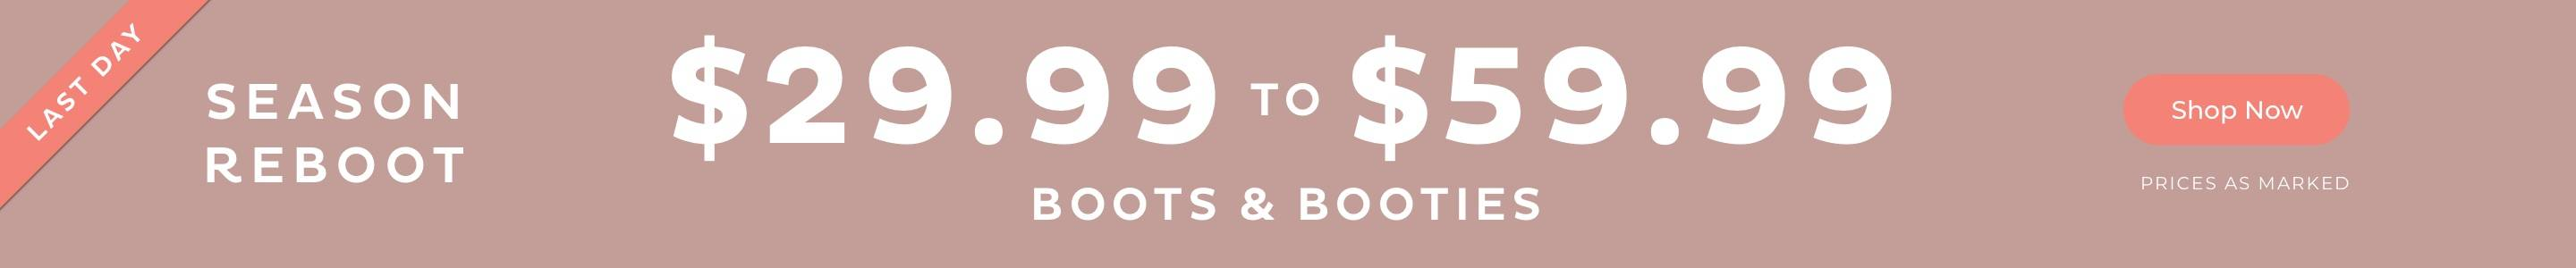 $29.99 to $59.99 Boots & booties